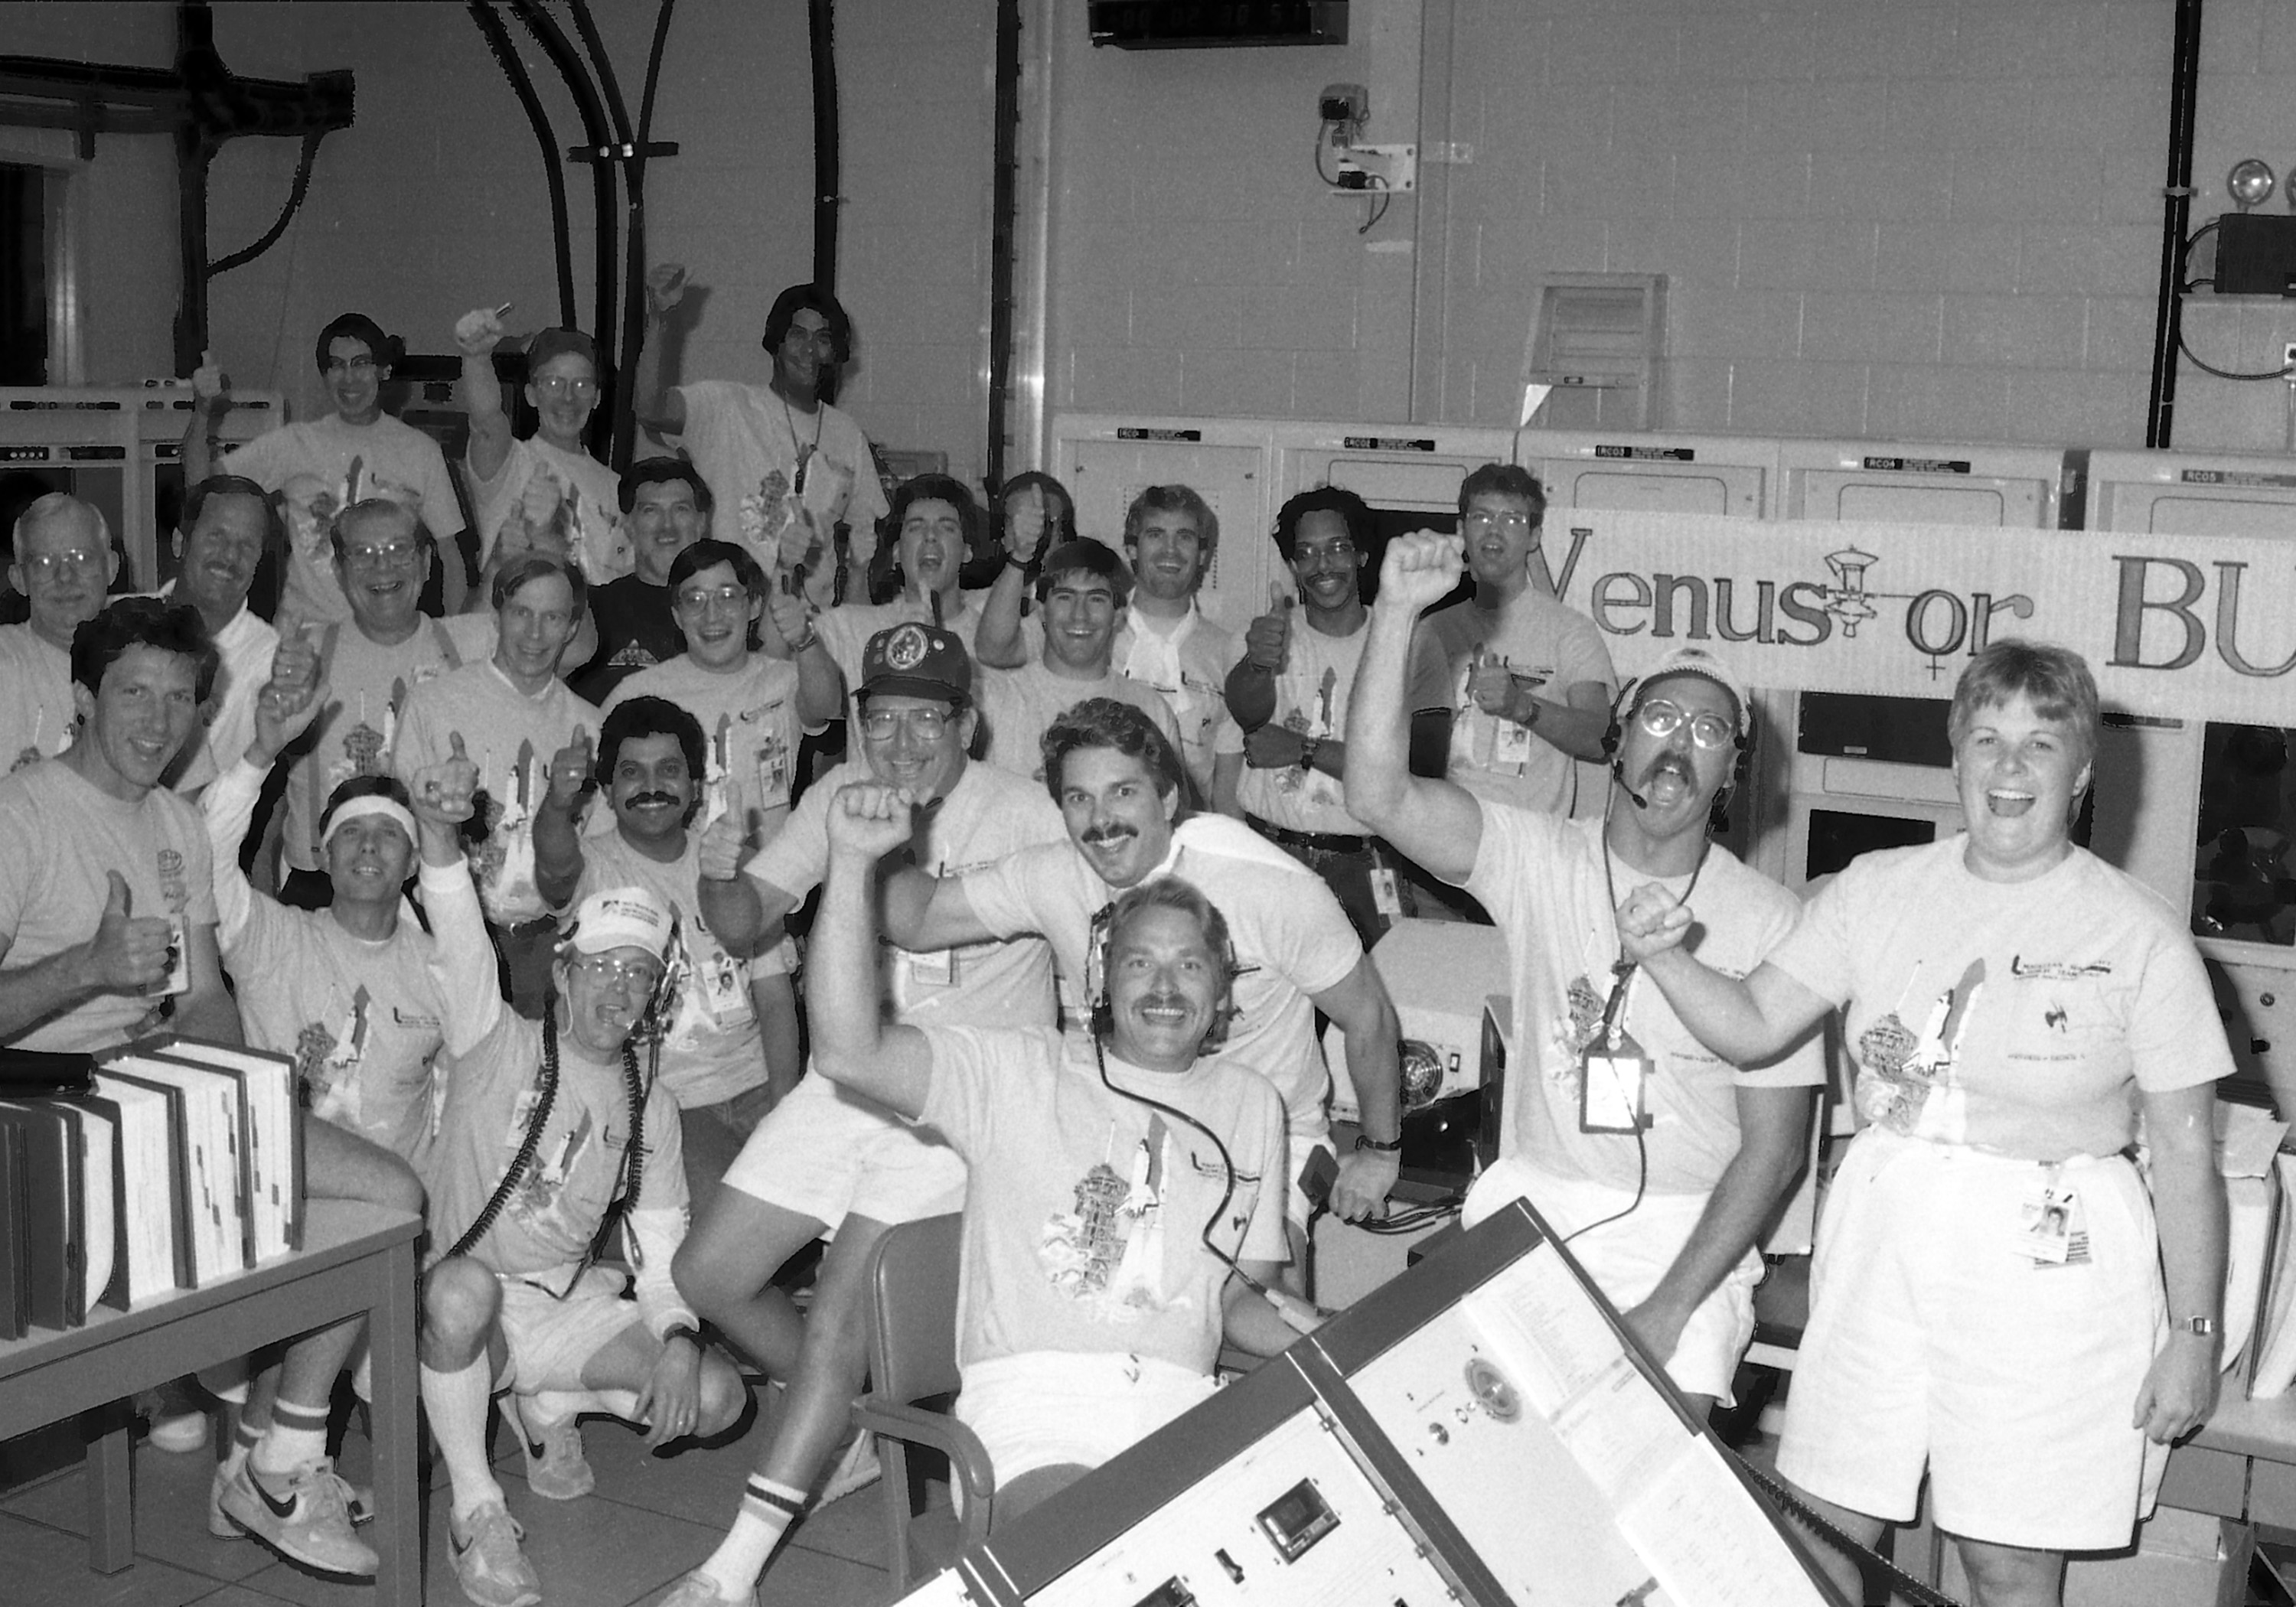 Magellan Mission to Venus - Pics about space